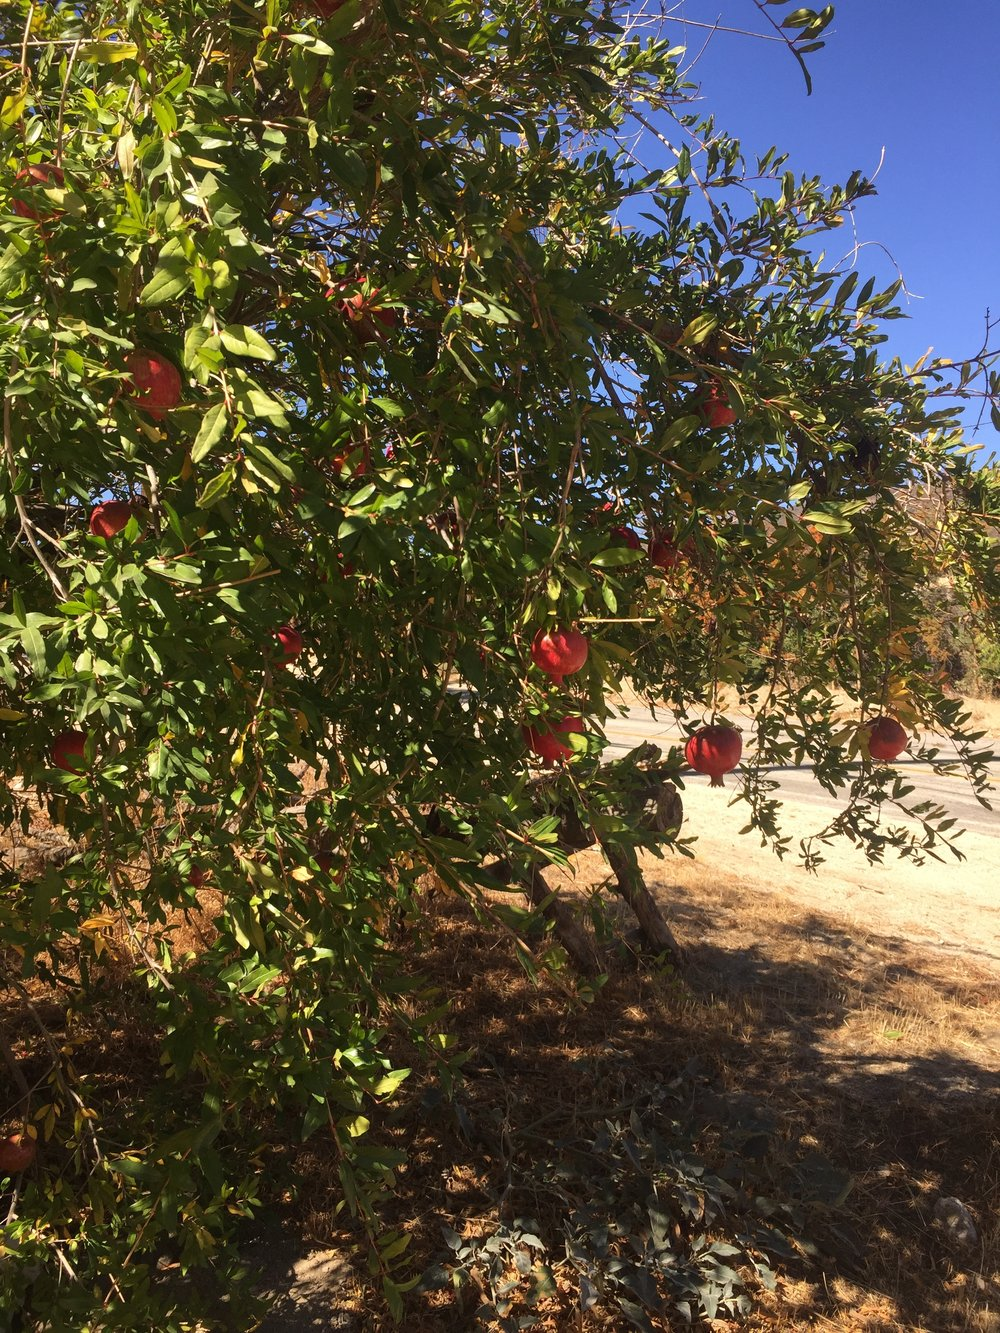 Too bad these pomegranates aren't hanging over the road